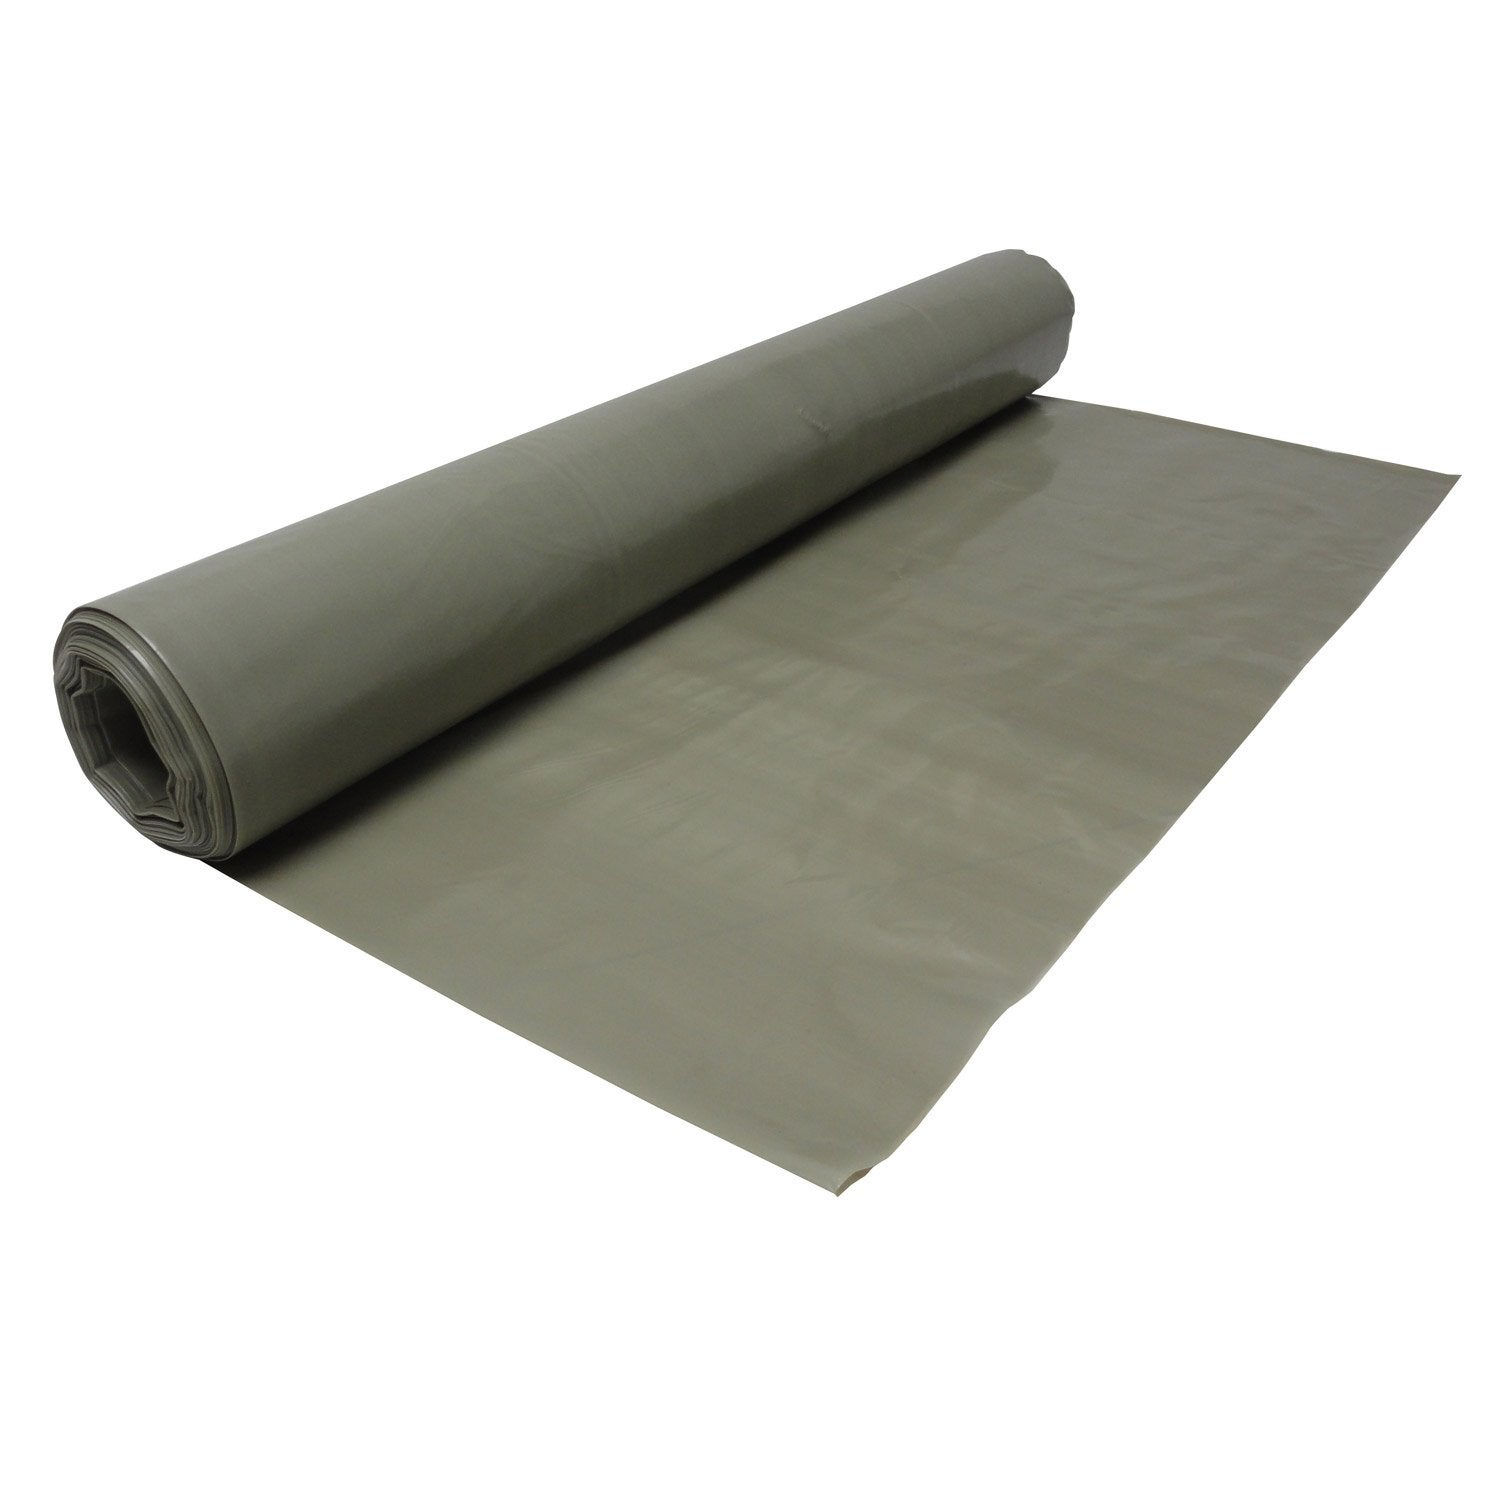 Film sous dalle polyethyl ne 10 x 4 m leroy merlin for Bache pour tonnelle leroy merlin